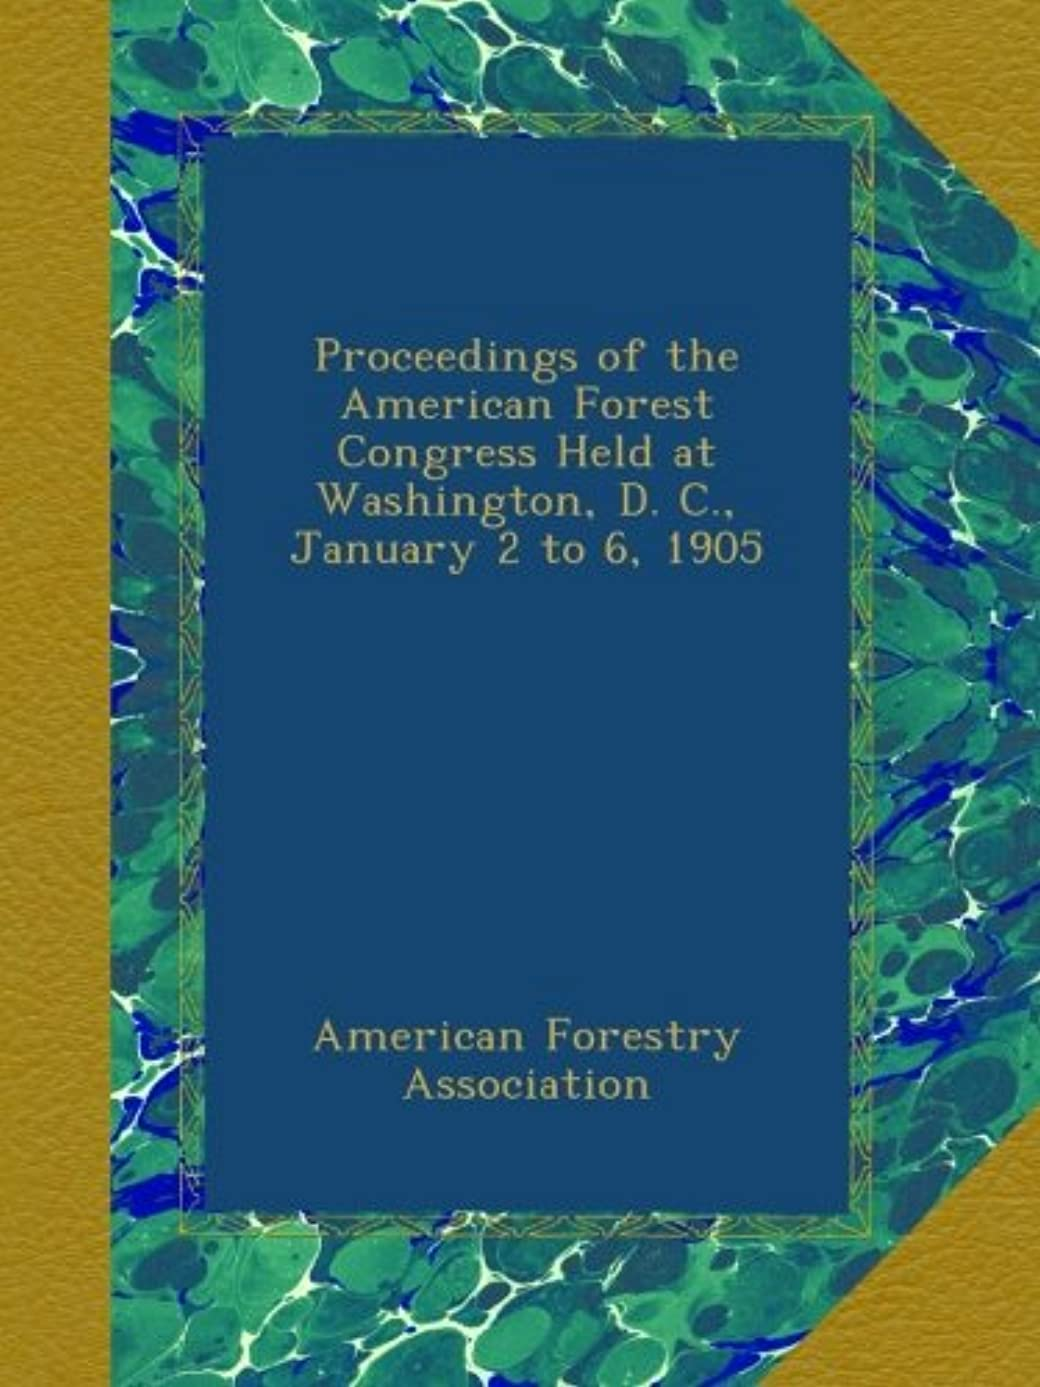 Proceedings of the American Forest Congress Held at Washington, D. C., January 2 to 6, 1905